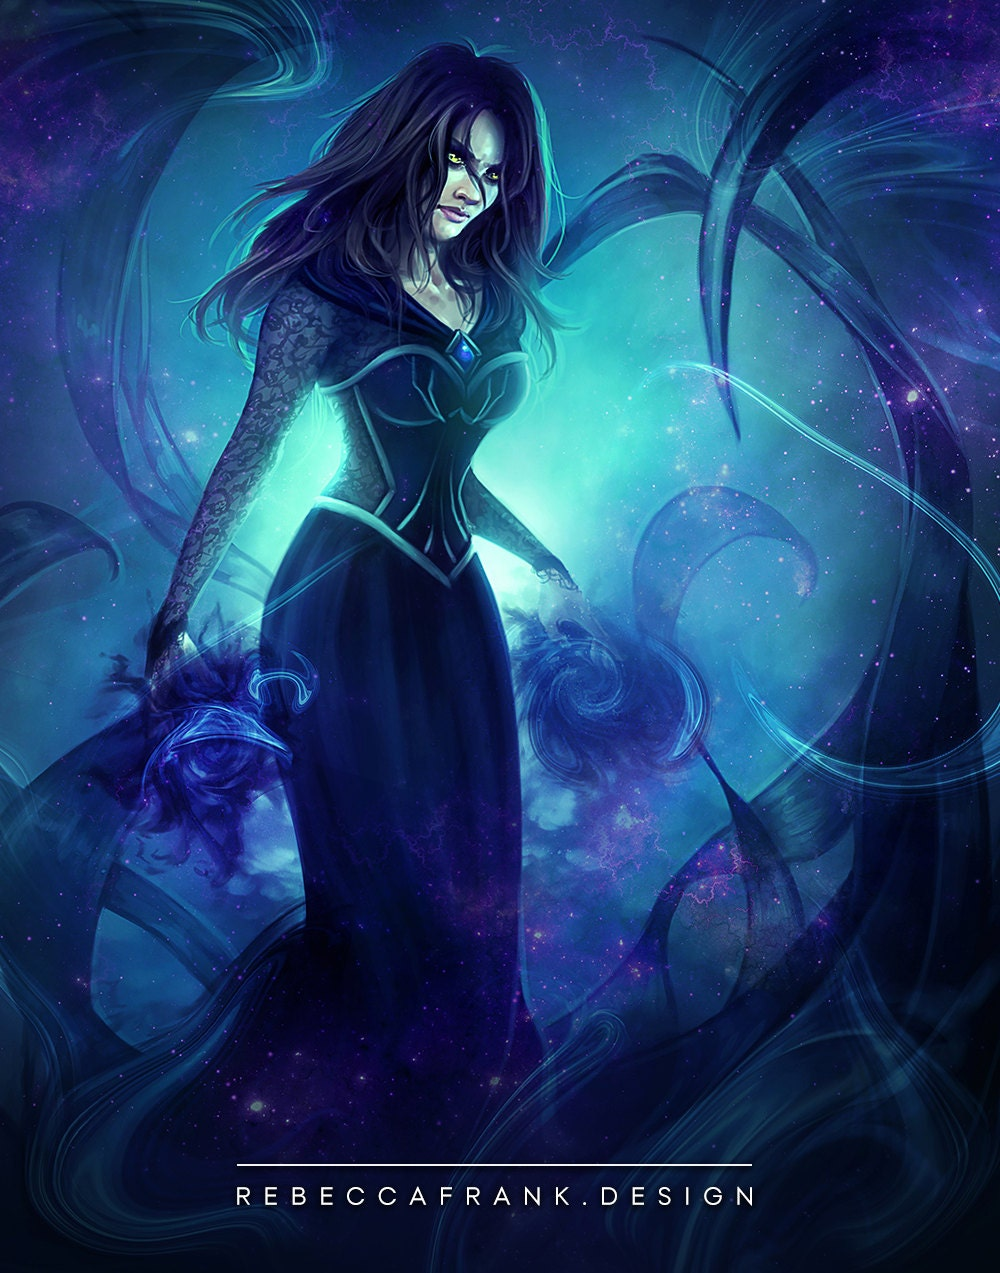 Evil Witch Enchantress with Dark Magic Fantasy Artwork